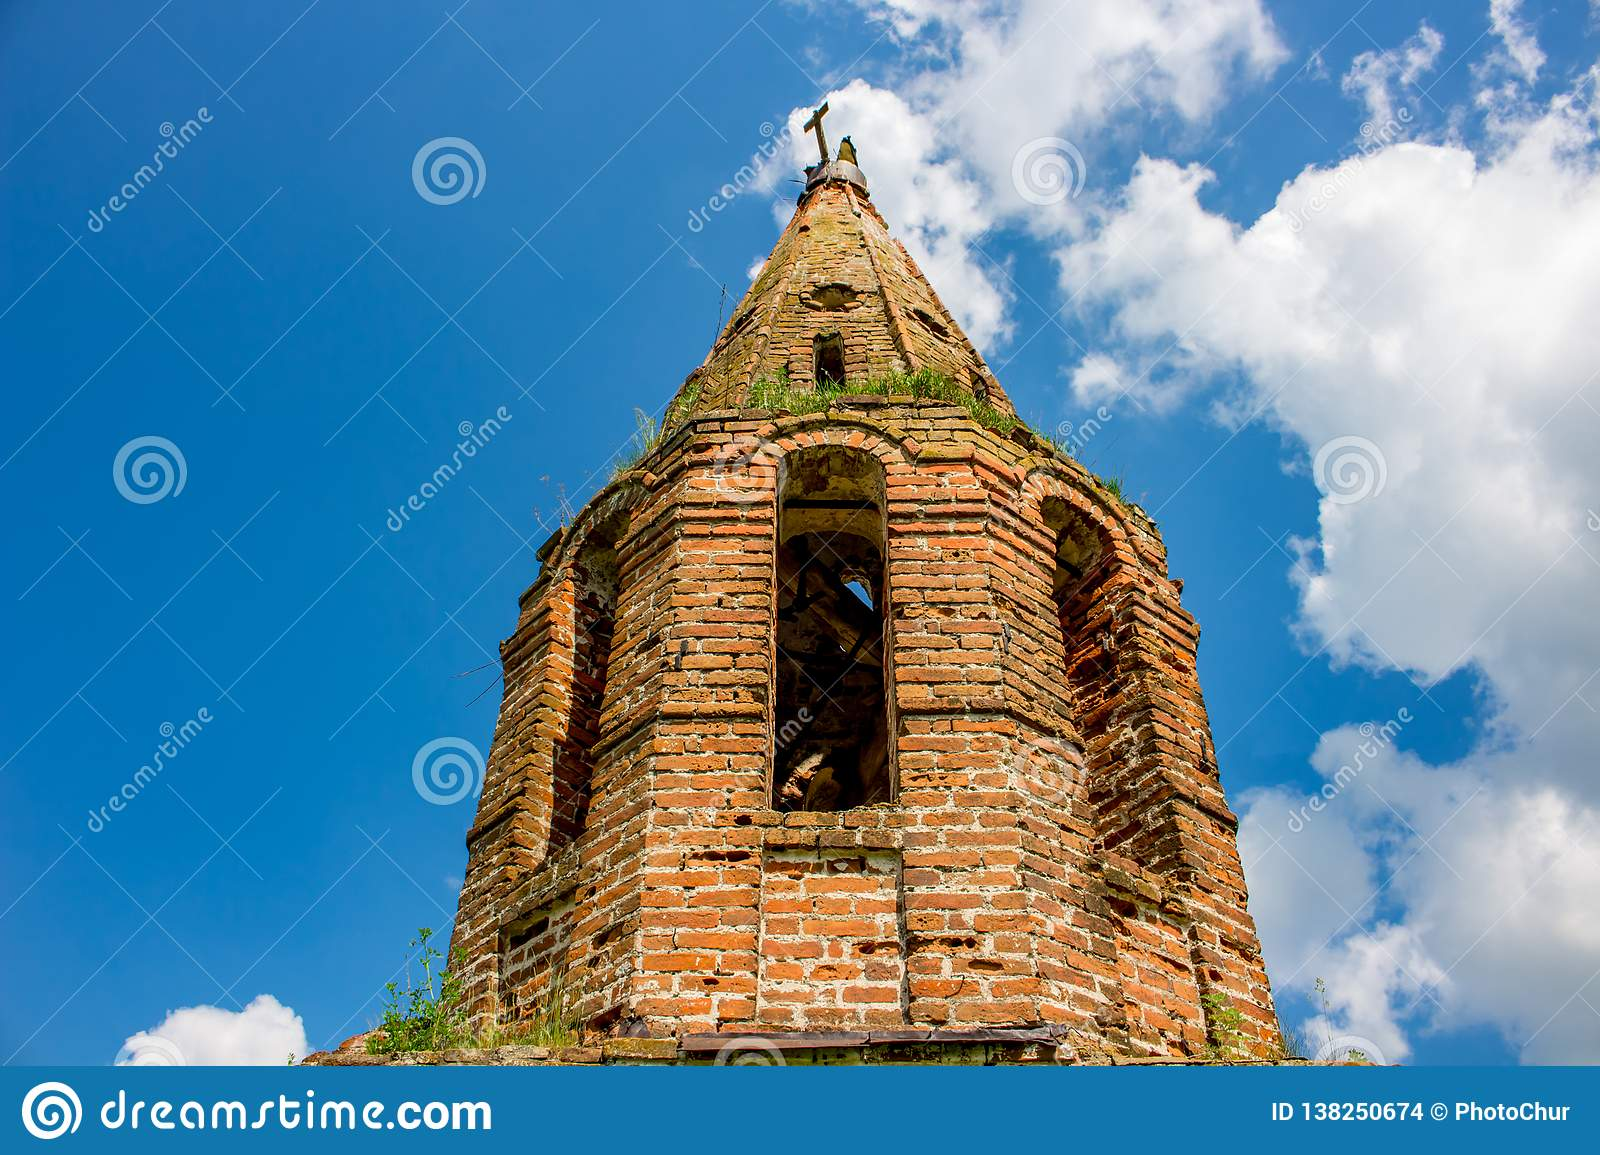 Ruins of the tent church of St. John the Evangelist of the 18th century, Russia